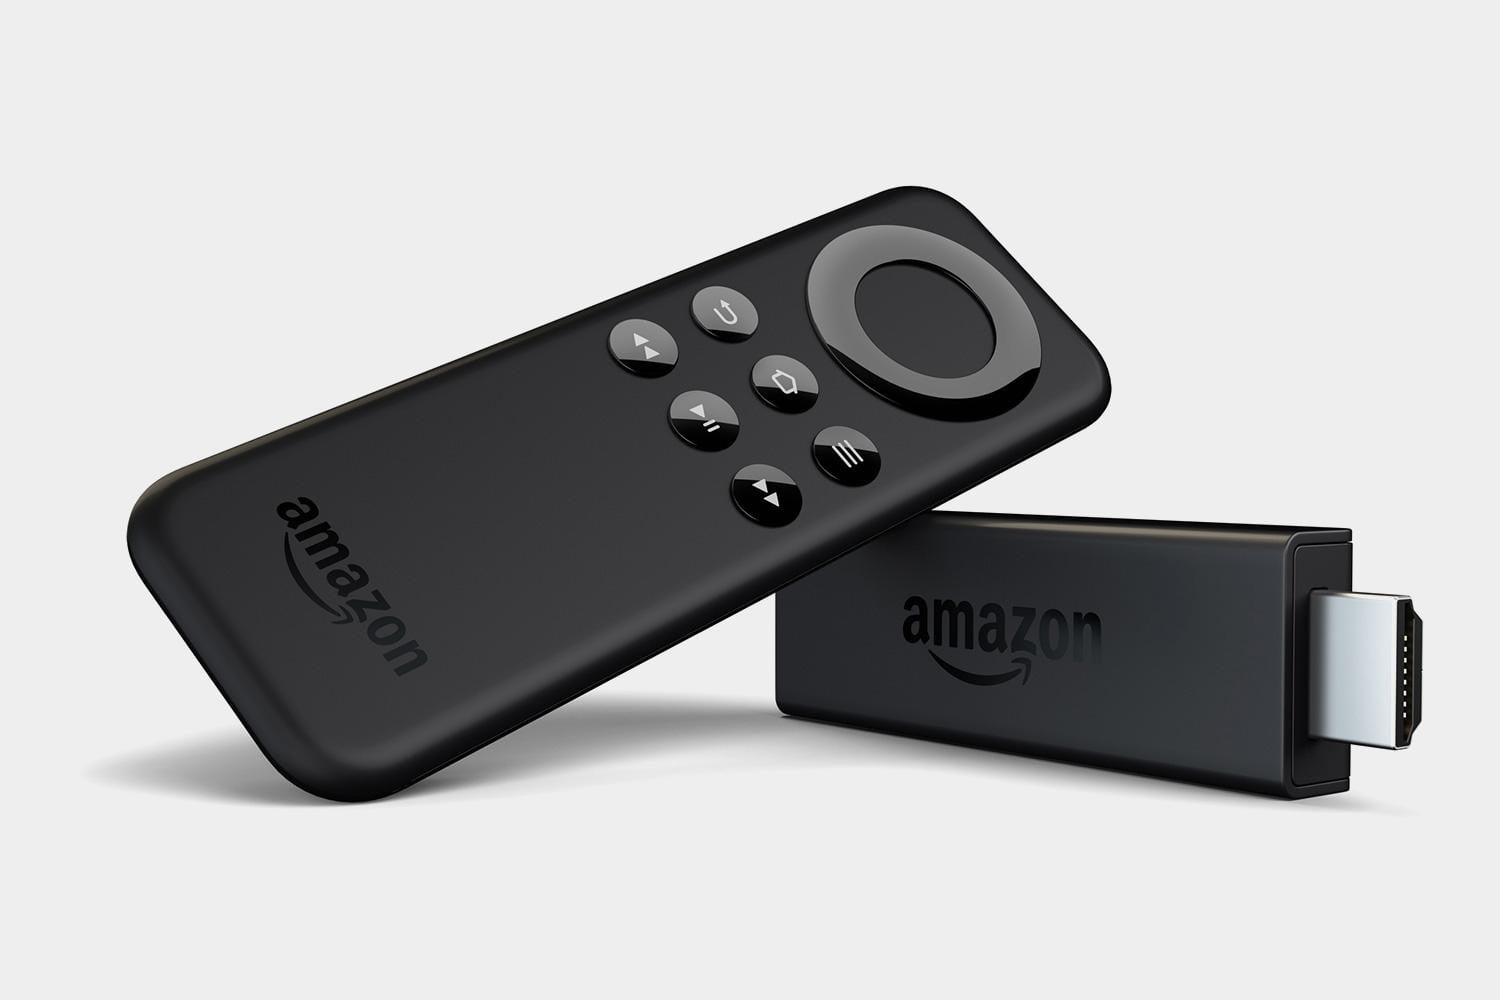 Chromecast Vs Roku Streaming Stick Vs Amazon Fire Tv